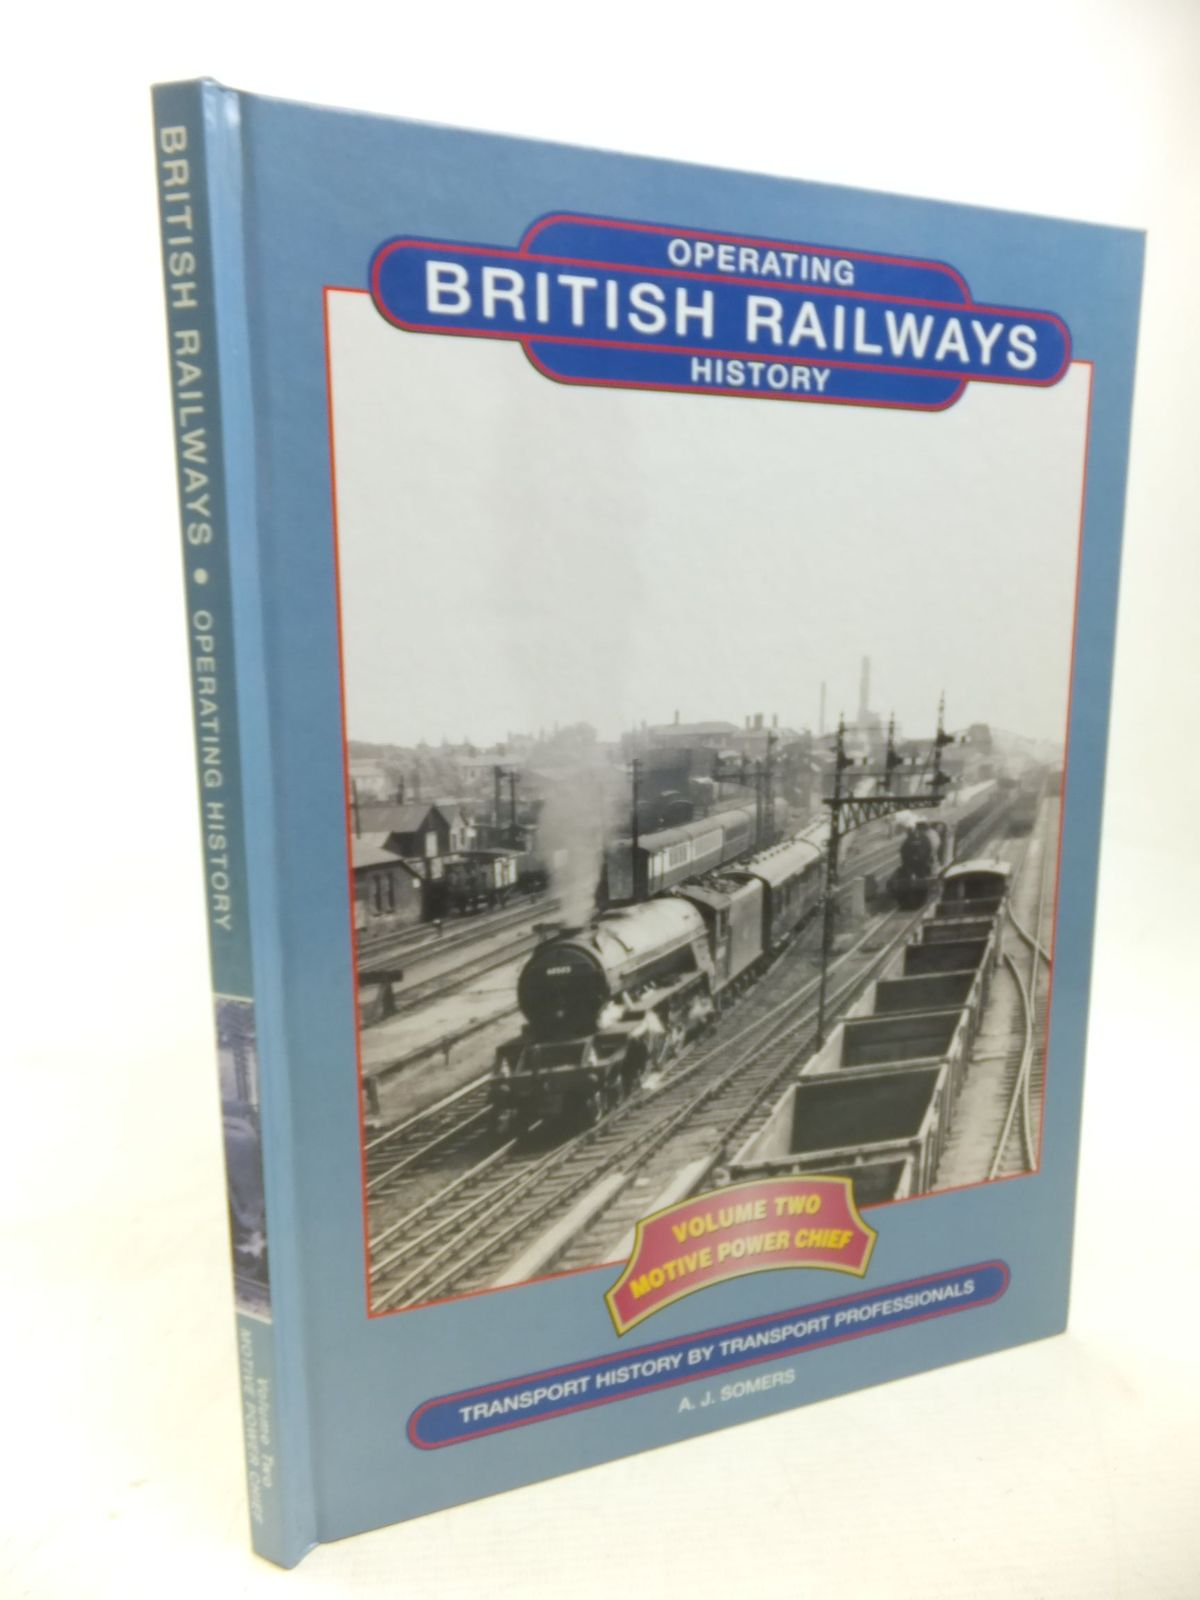 Photo of OPERTATING BRITISH RAILWAYS HISTORY: VOLUME TWO MOTIVE POWER CHIEF written by Somers, A.J. published by Xpress Publising (STOCK CODE: 1713222)  for sale by Stella & Rose's Books